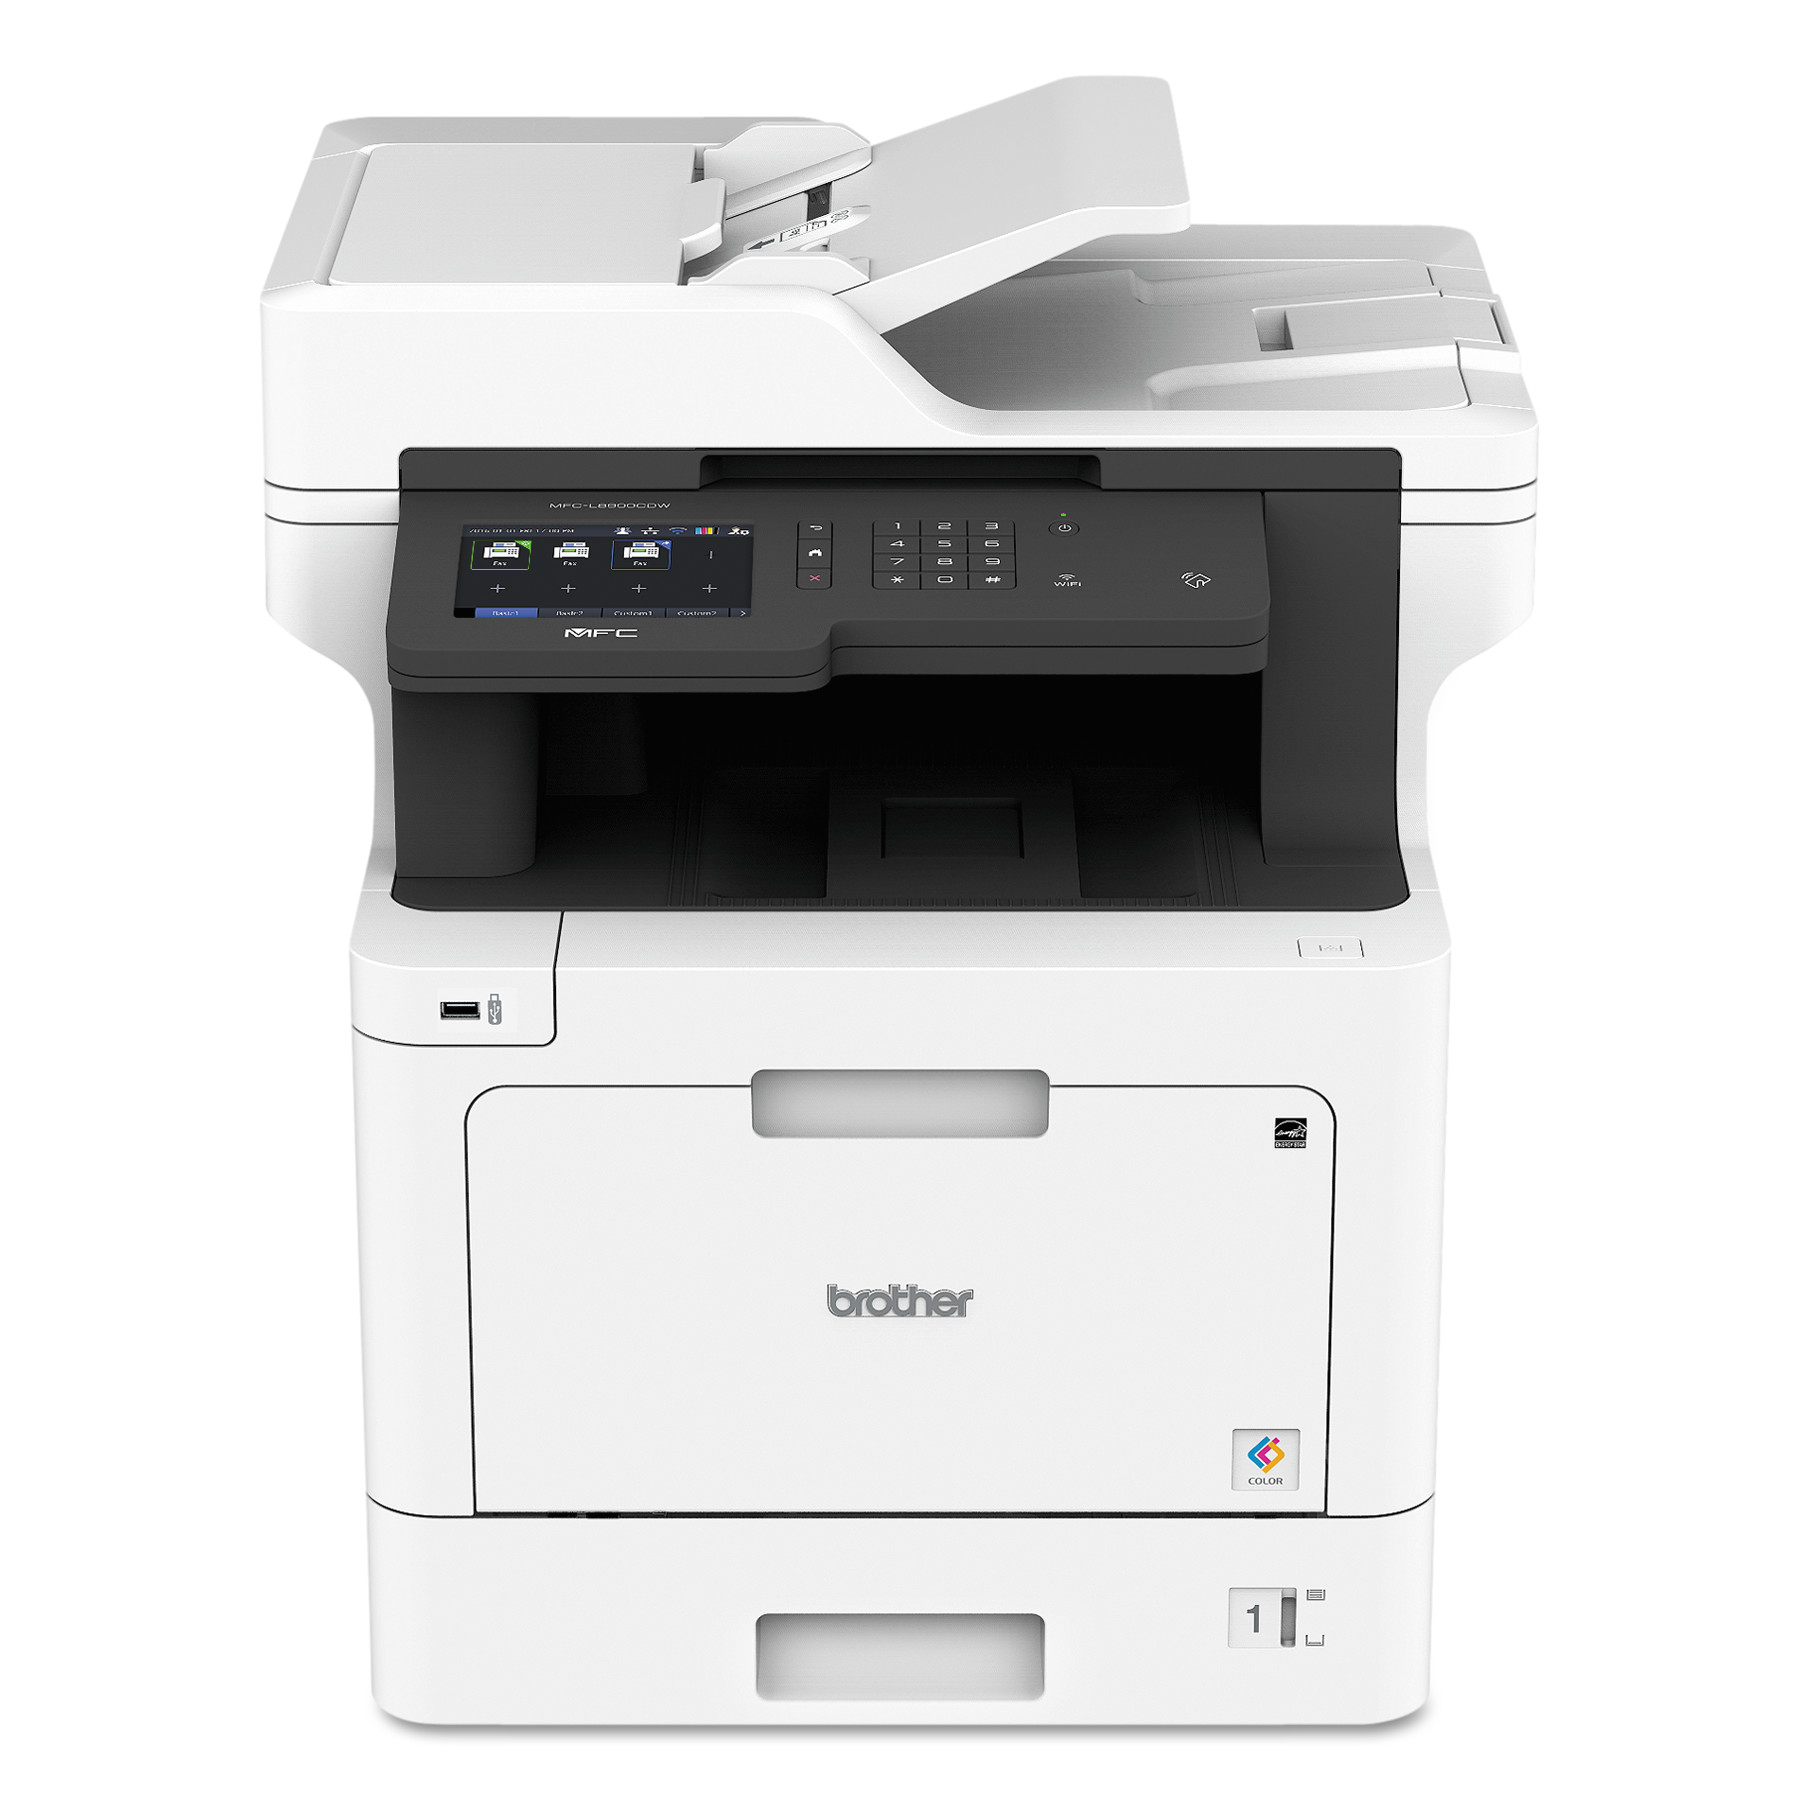 Brother MFC-L8900CDW Business Color Laser All-in-One, Copy Fax Print Scan by Brother